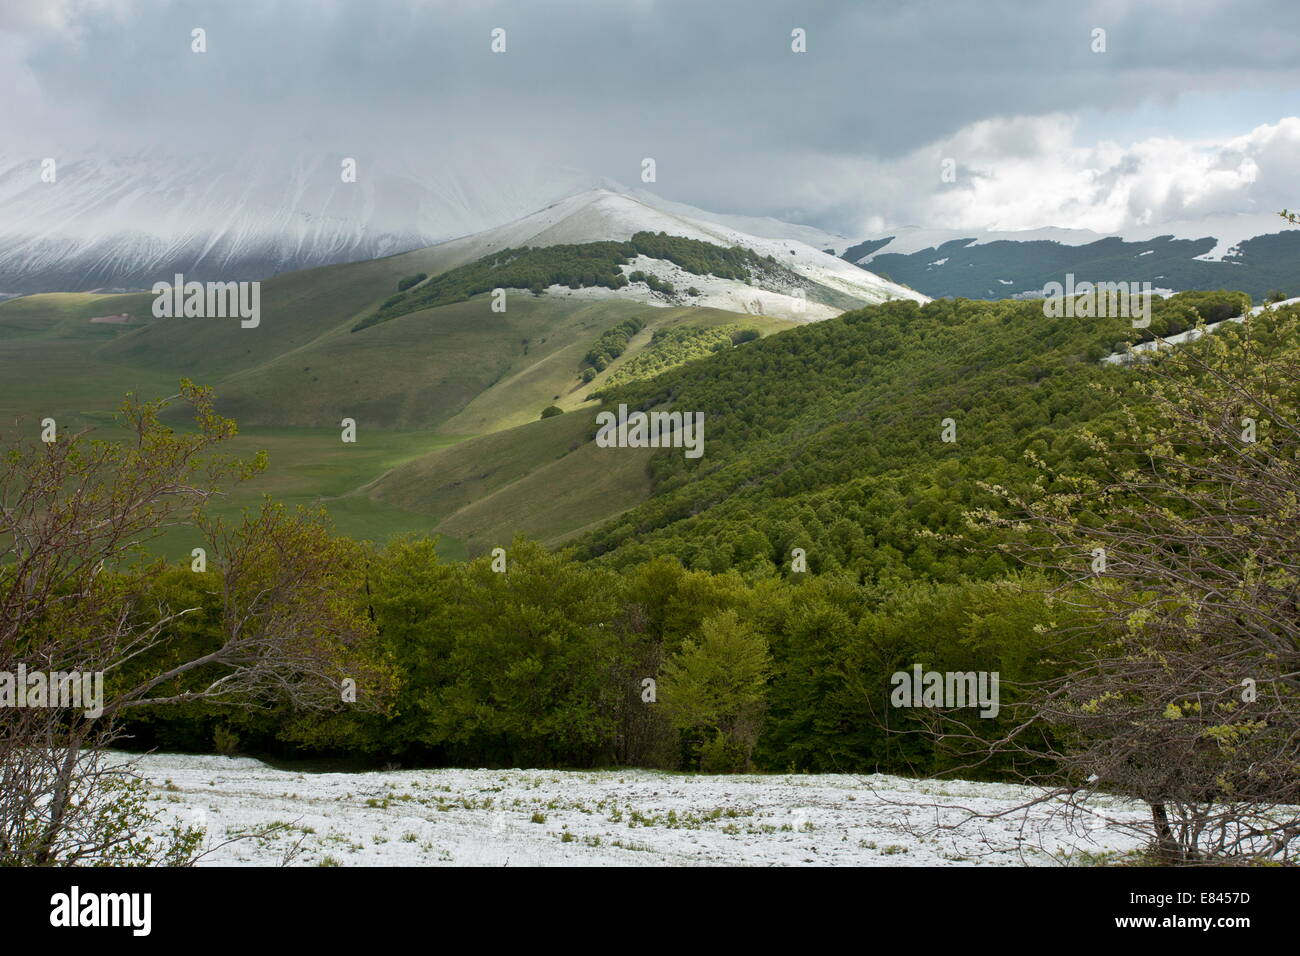 Looking into the Piano Grande, in spring, from the south; Monti Sibillini National Park, Italy. Stock Photo